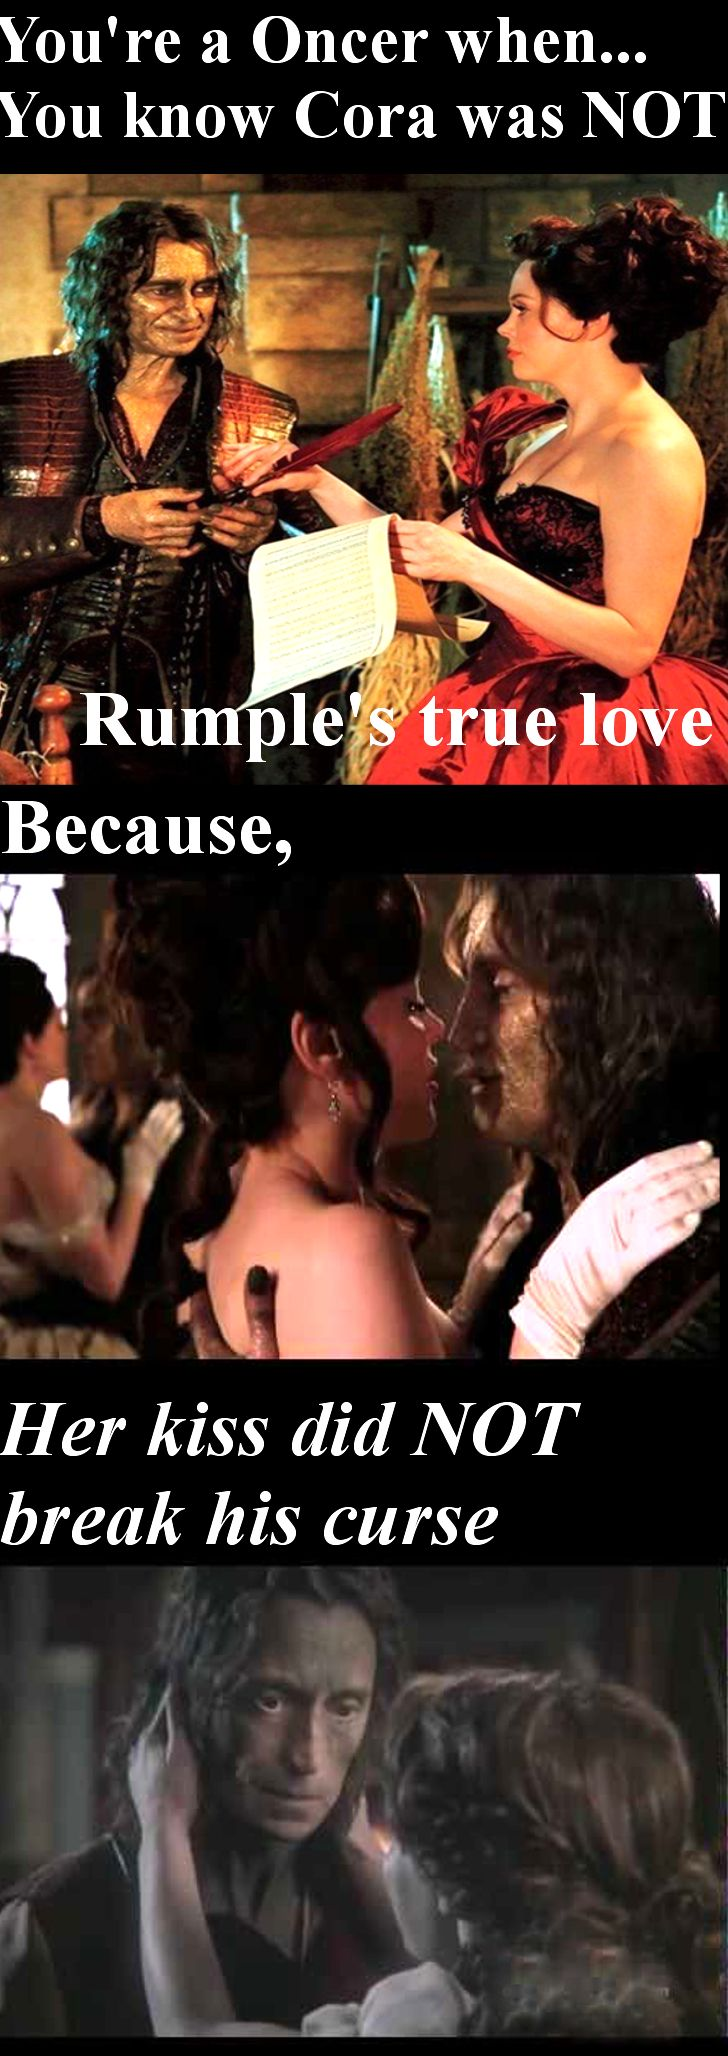 That's how you knew that even if Rumple truly did love Cora, you knew that Cora never truly loved Rumple. But who cares?? We have Rumbelle now! <3